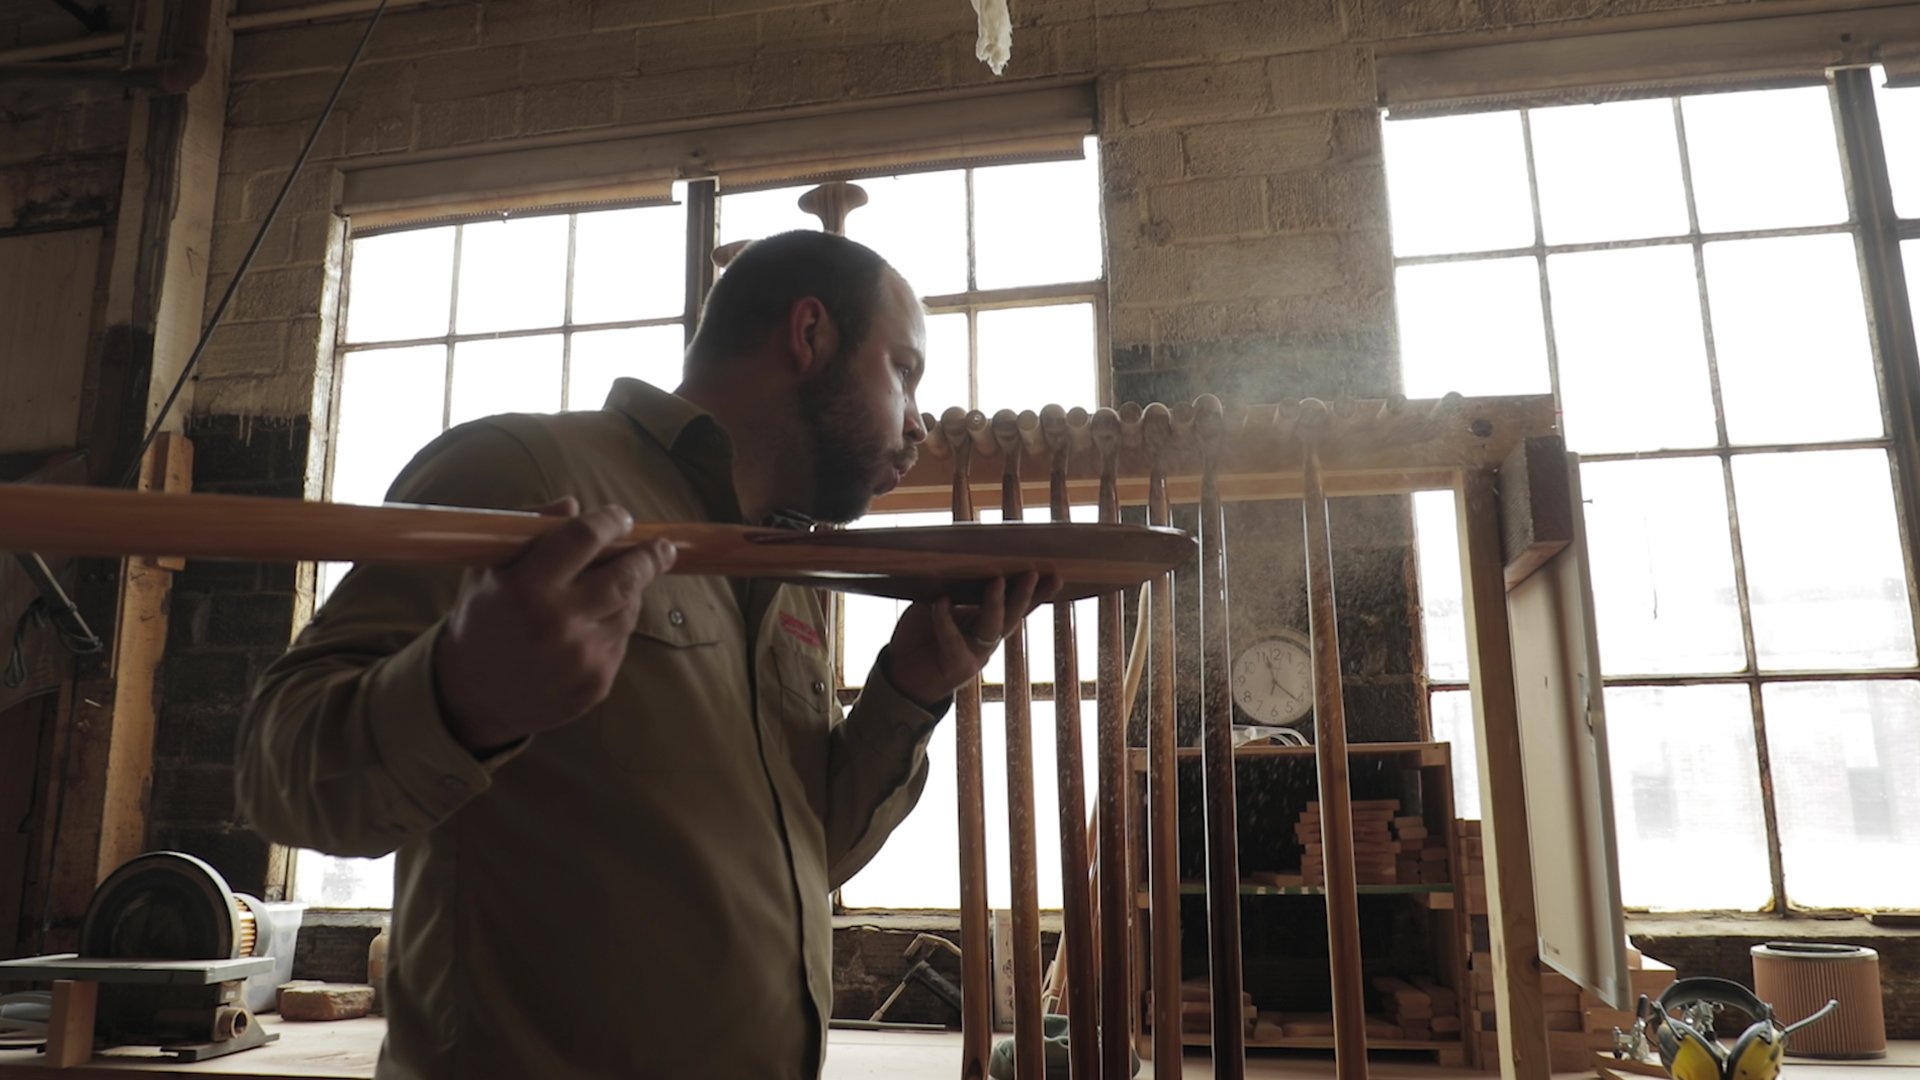 An image of a man blowing sawdust off of a canoe paddle his is crafting in a workshop.